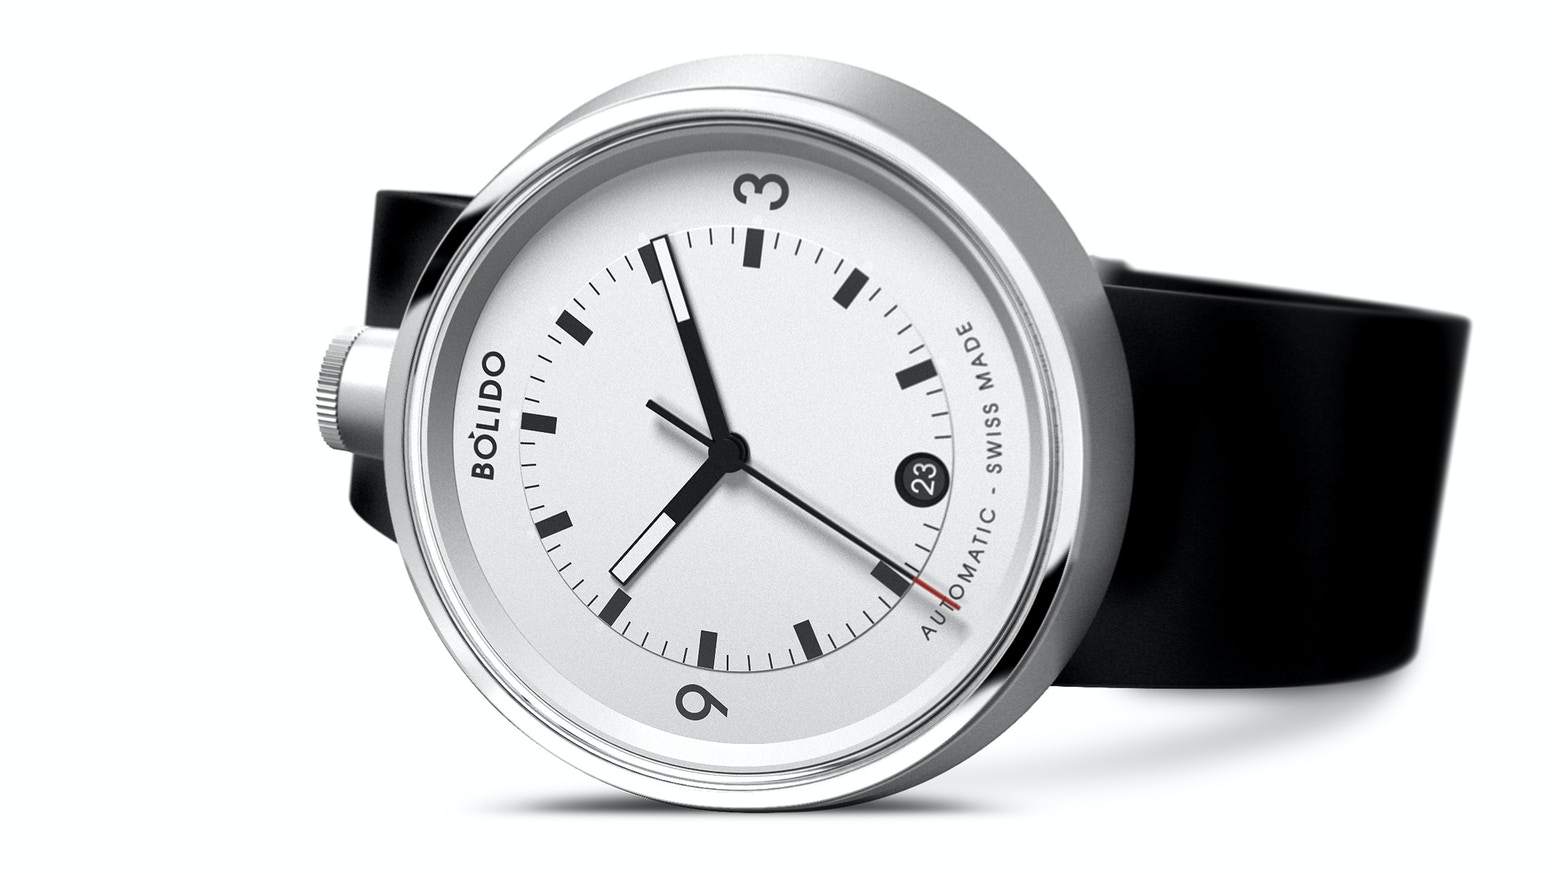 Uncompromising watches with an iconic design 100% made in Switzerland at a totally un-Swiss price.